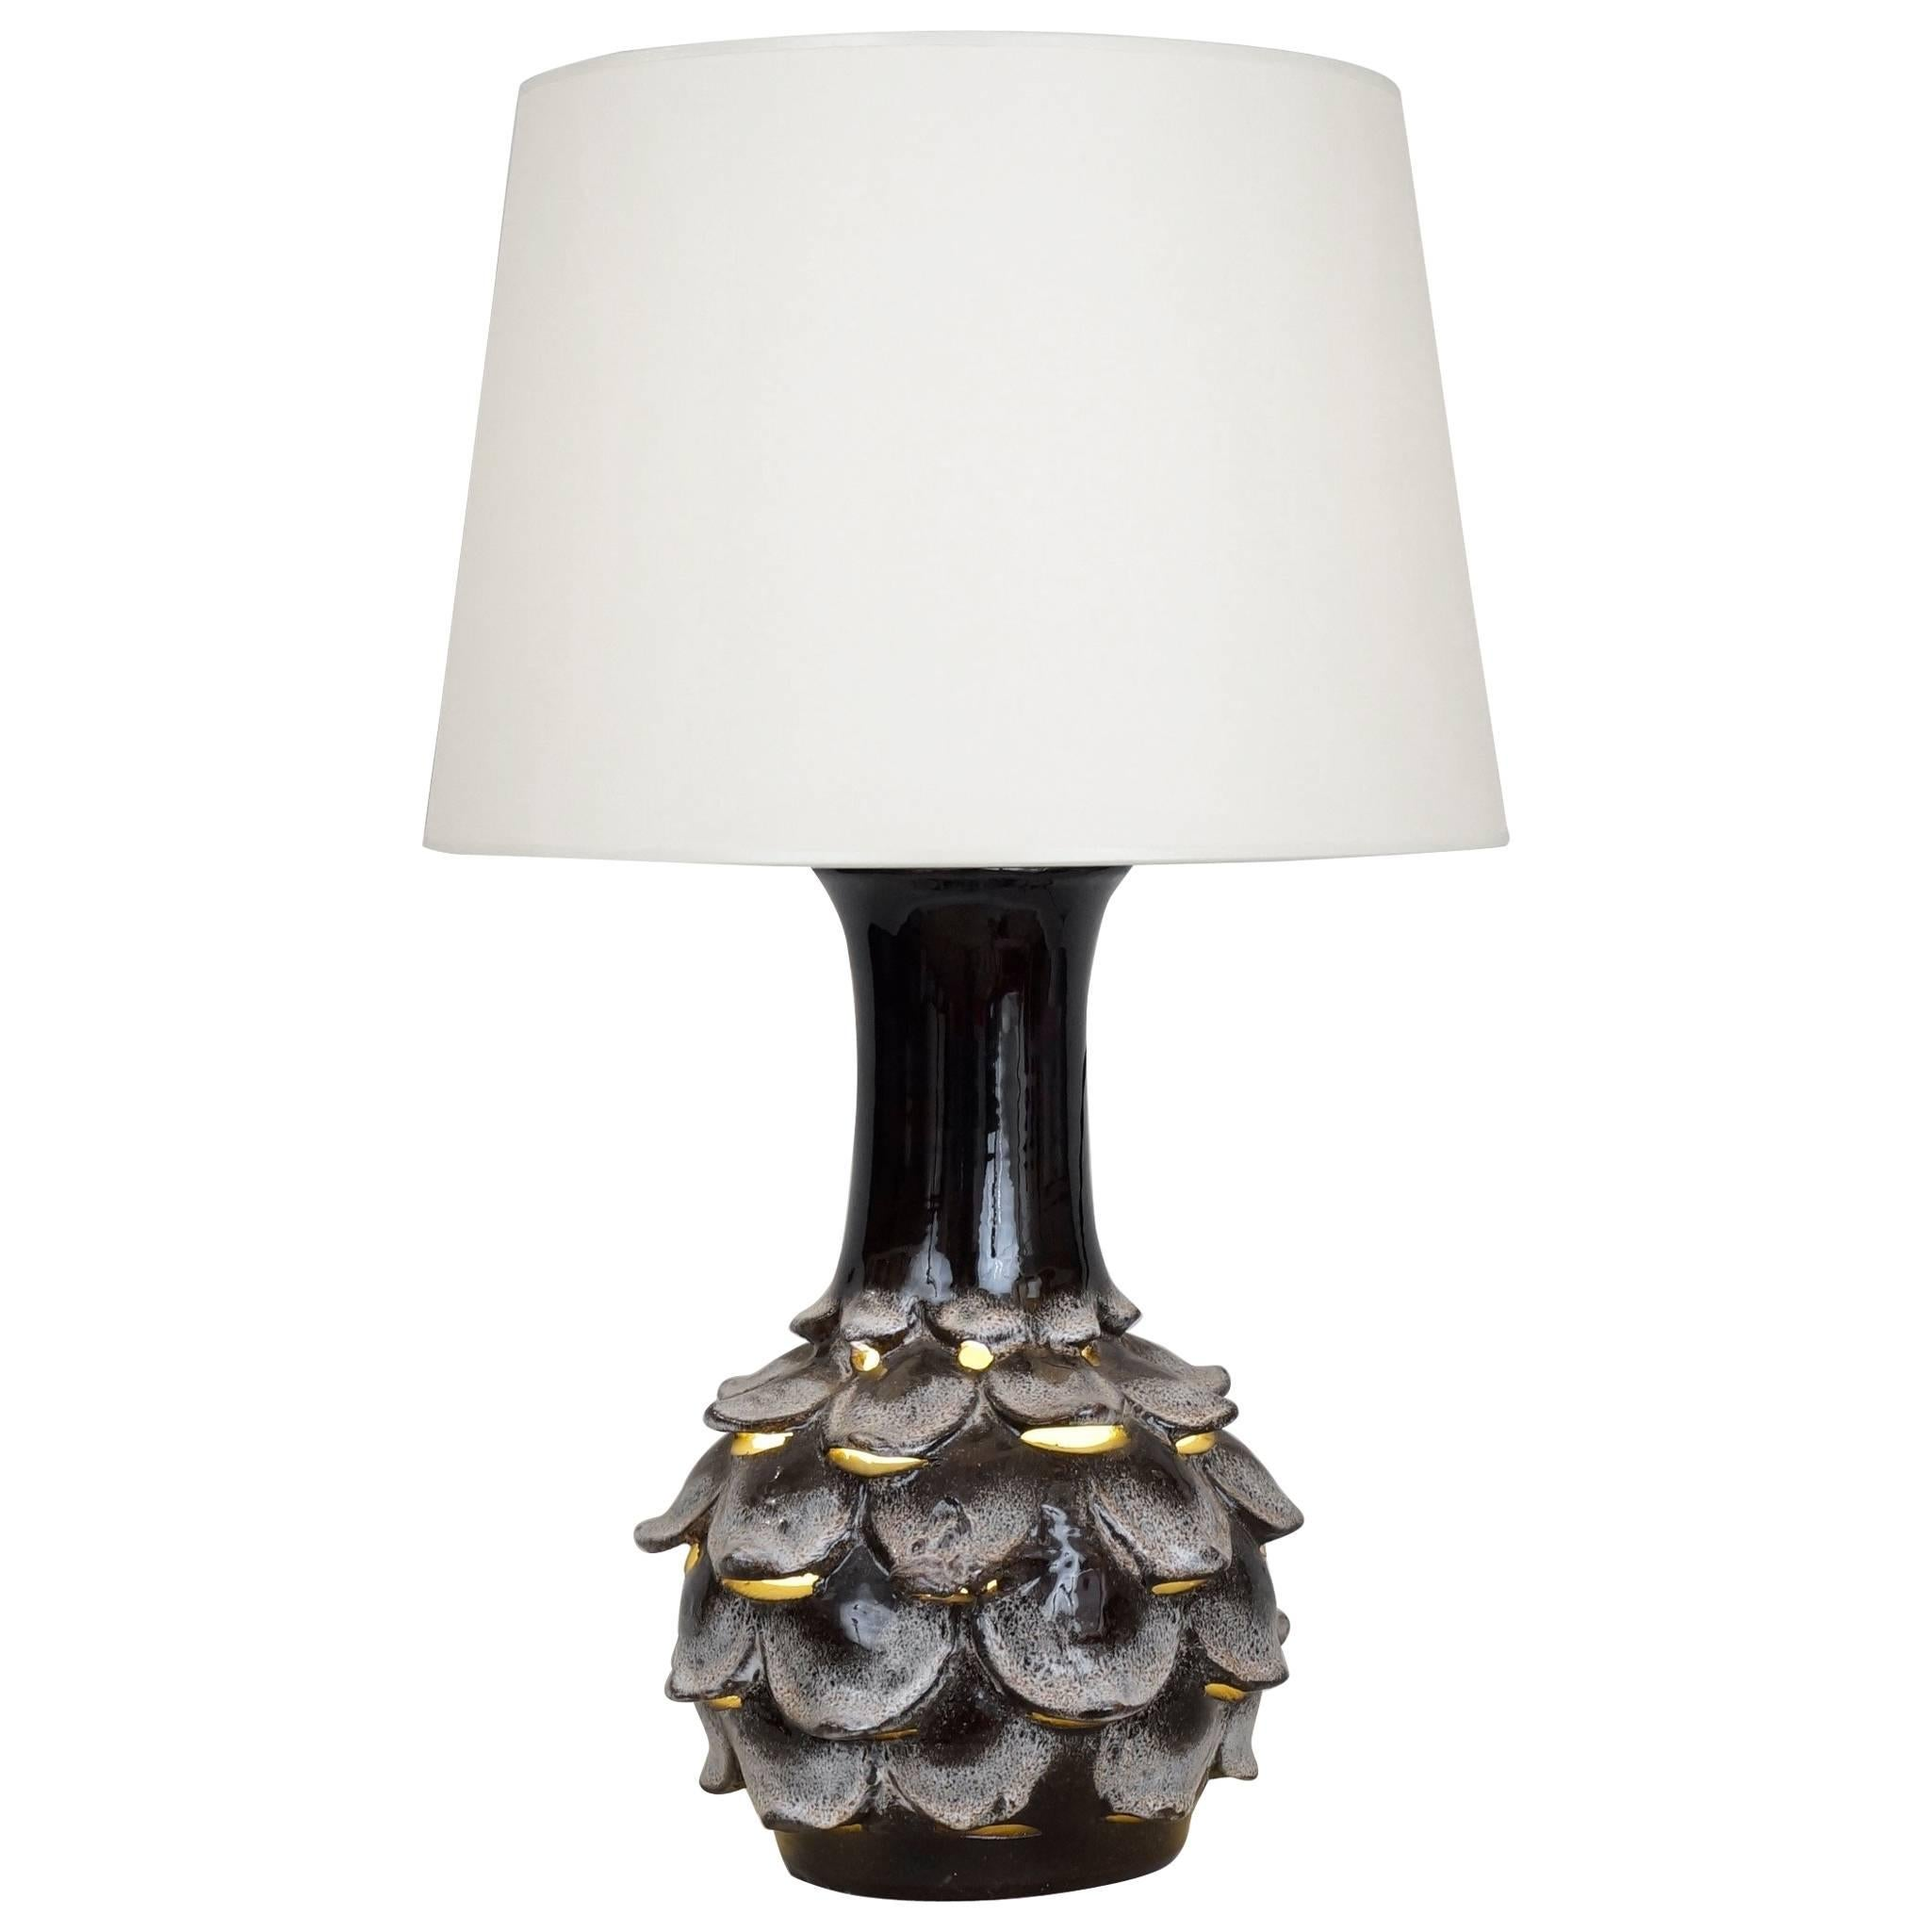 1970 Ceramic Artichoke Table Lamp